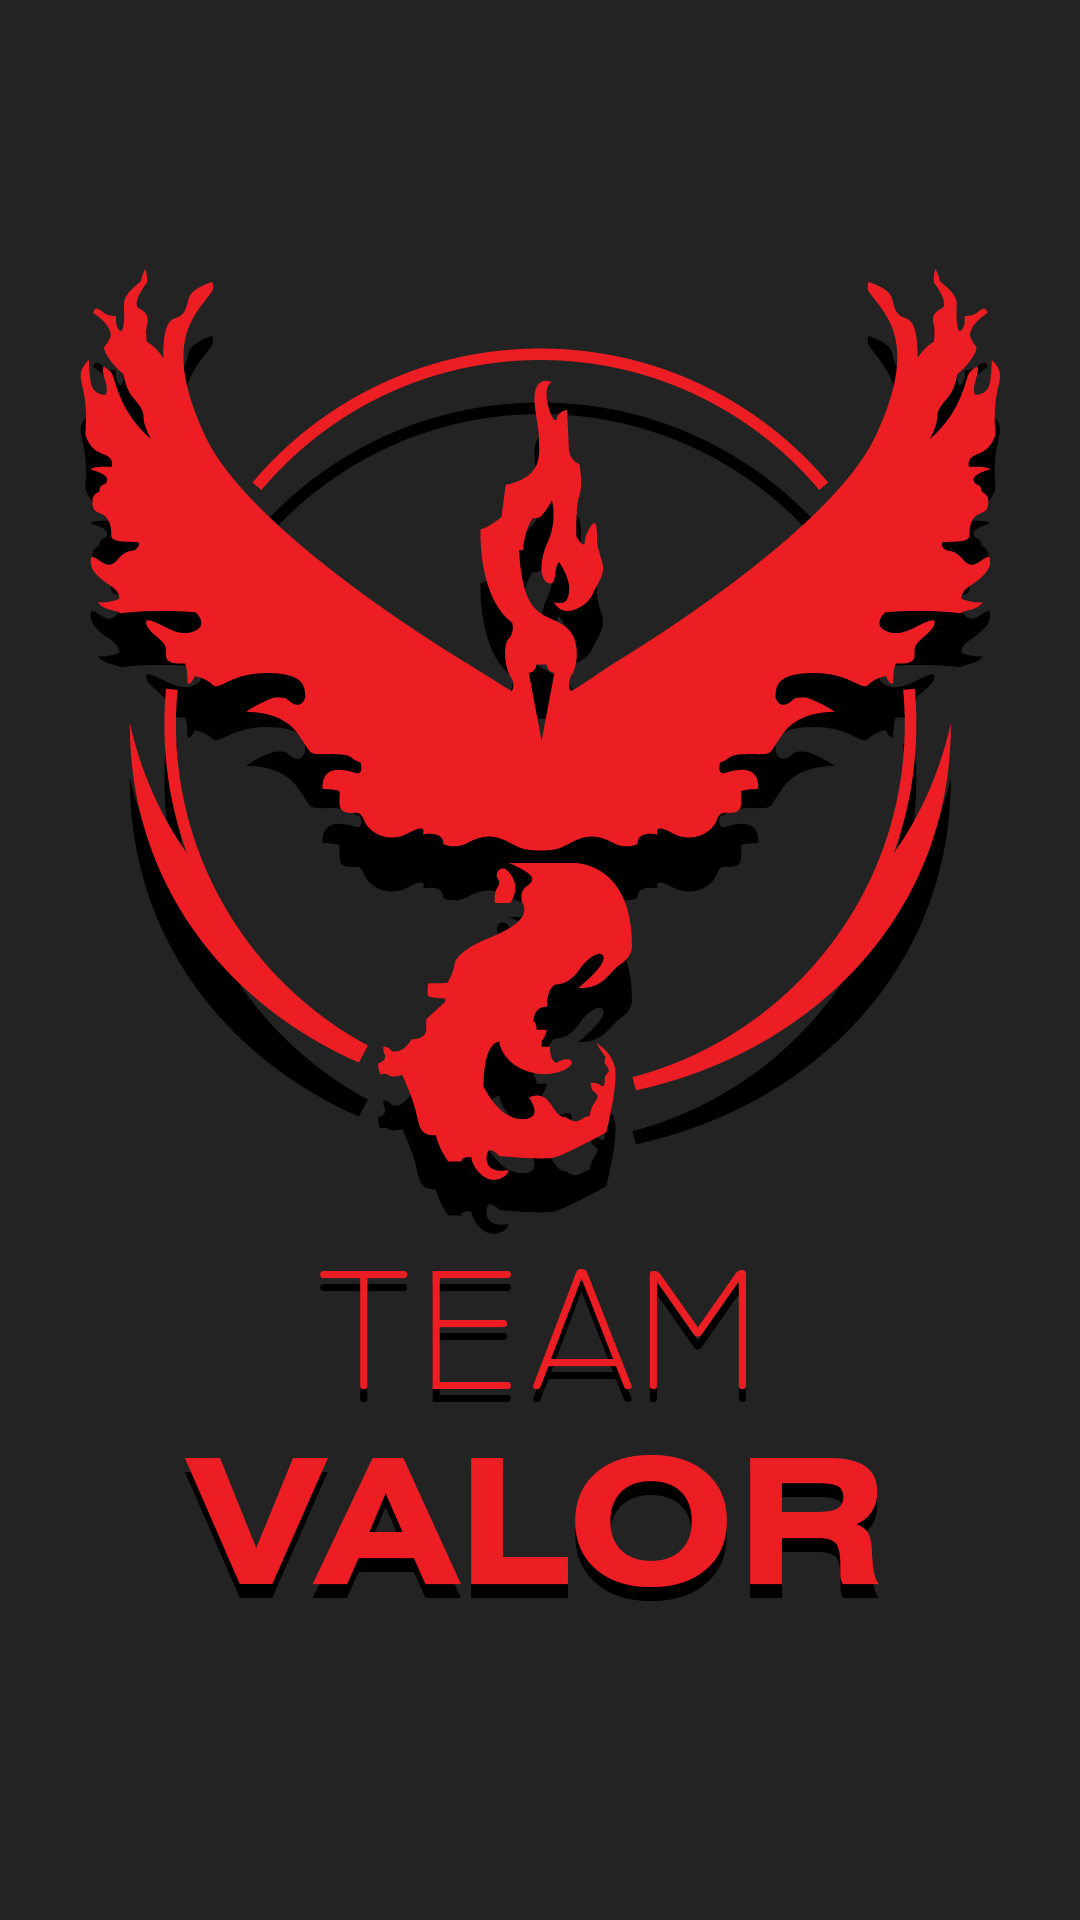 1080x1920 Made This Walpaper For Team Valor Pokemongo